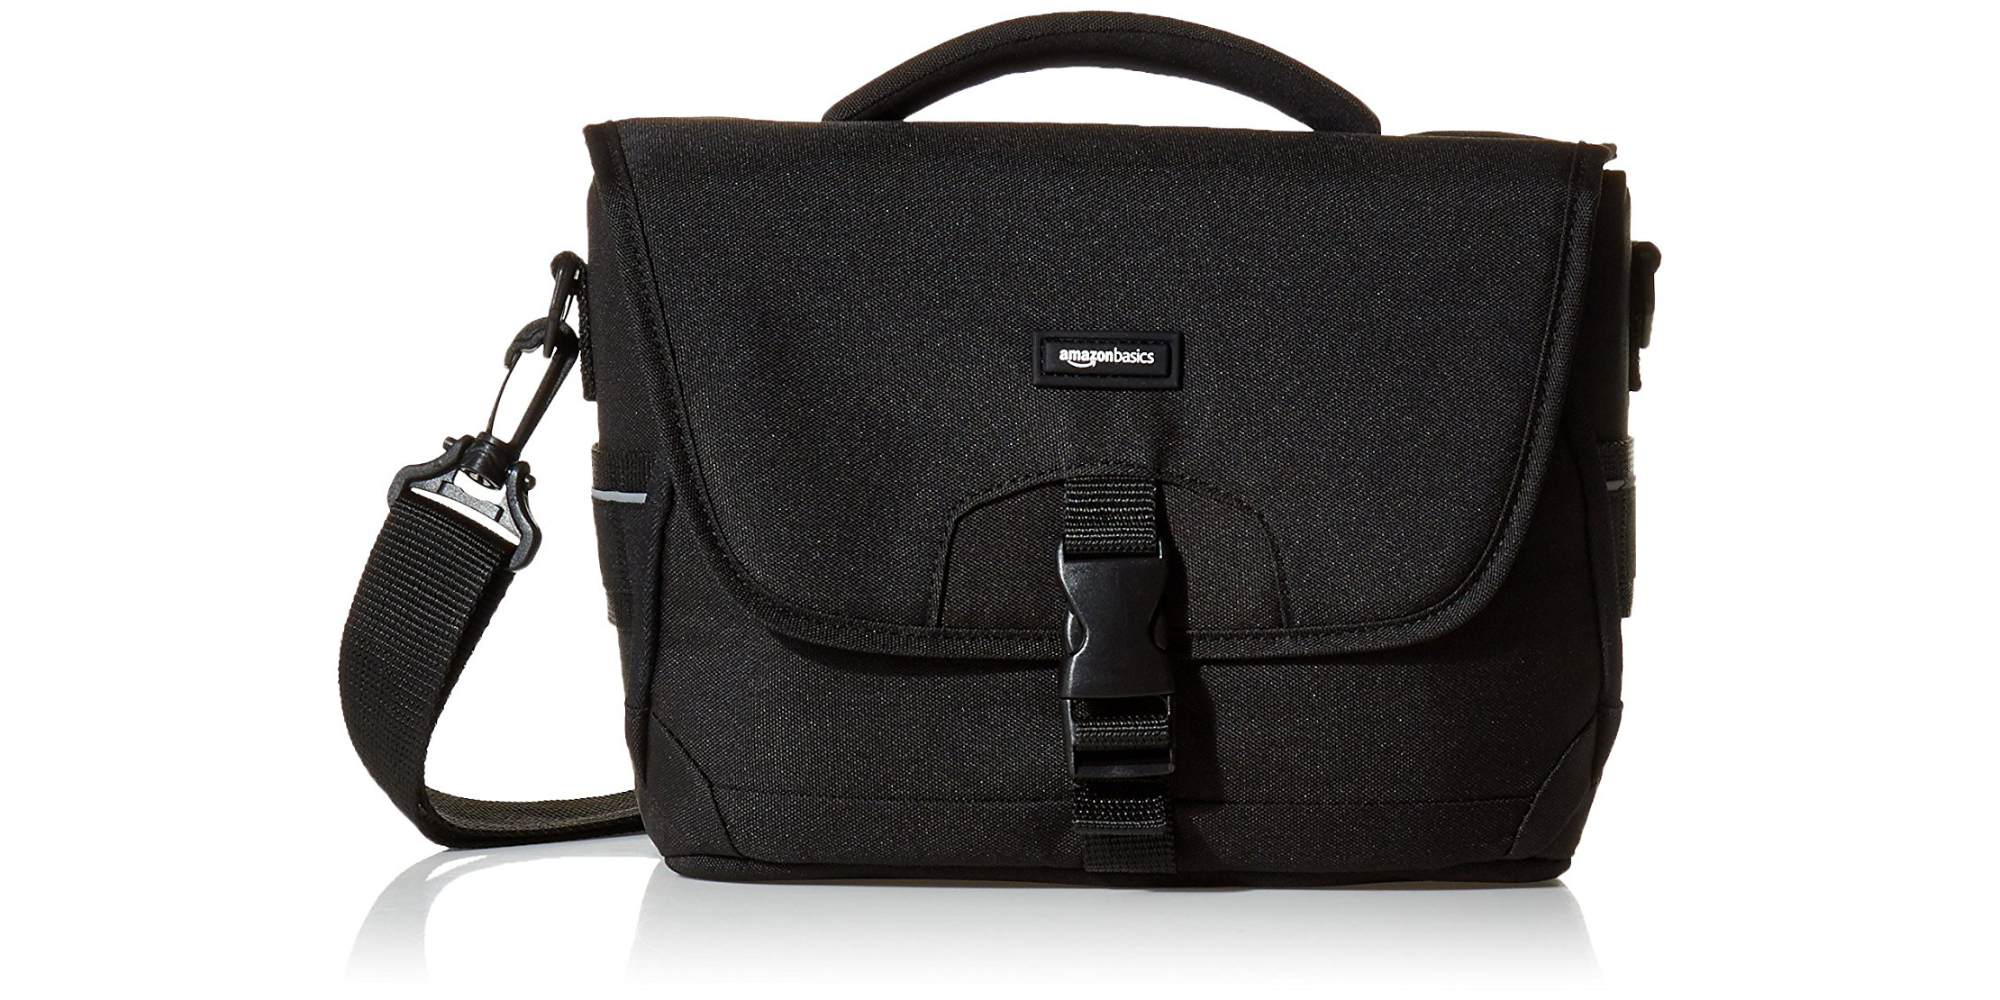 Carry a DSLR, 2 lenses, and small tablet w/ an AmazonBasics Bag for $12.50 (Reg. $18)